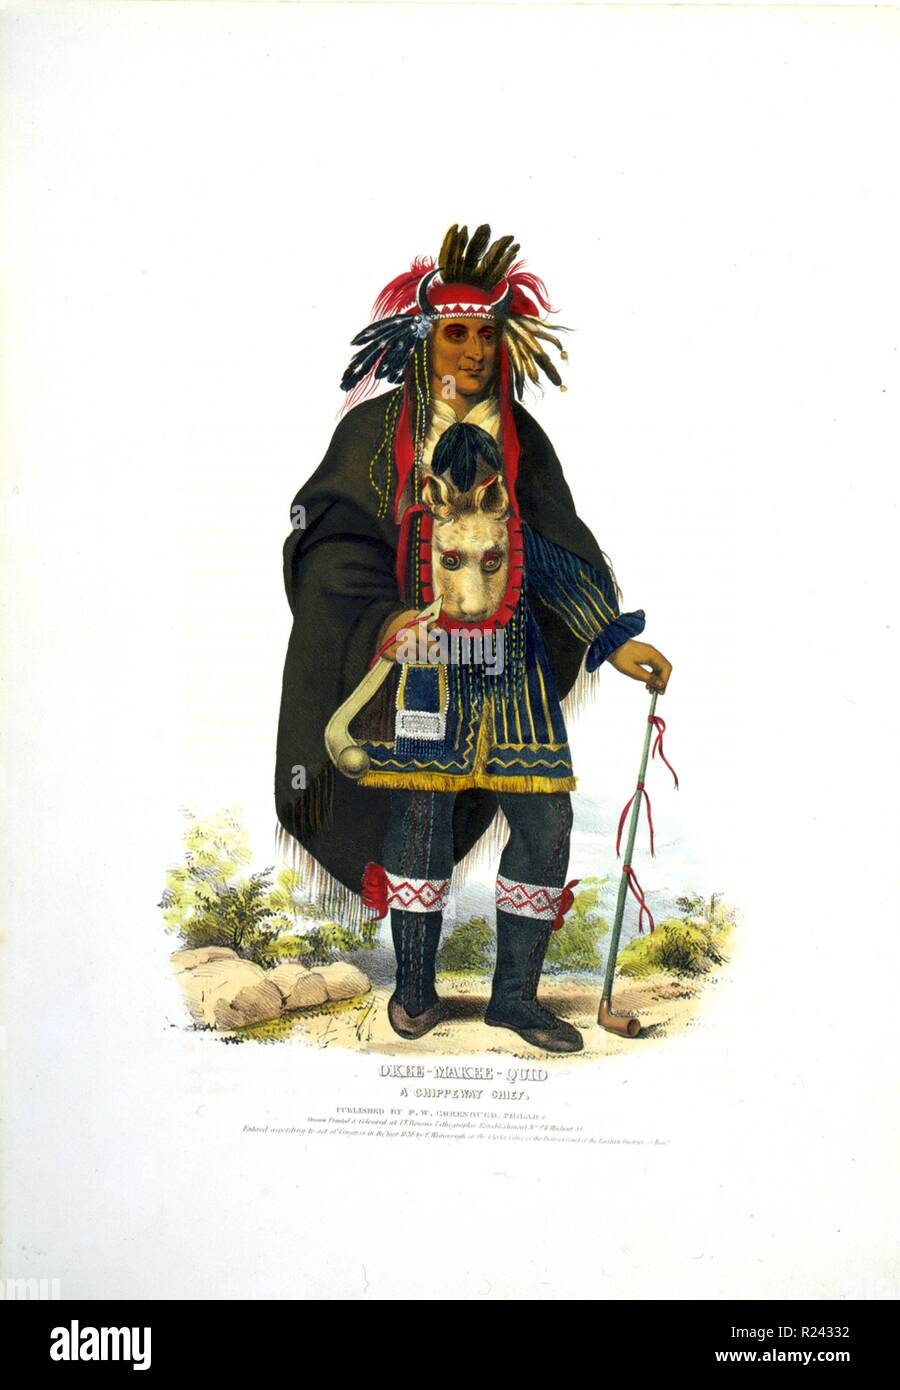 Okee-Makee-Quid a Chippewa chief wearing a buffalo headdress, holding a war club and a long peace pipe. The Ojibwe (or Chippewa) are one of the largest groups of Native Americans in North America. c.1838 - Stock Image